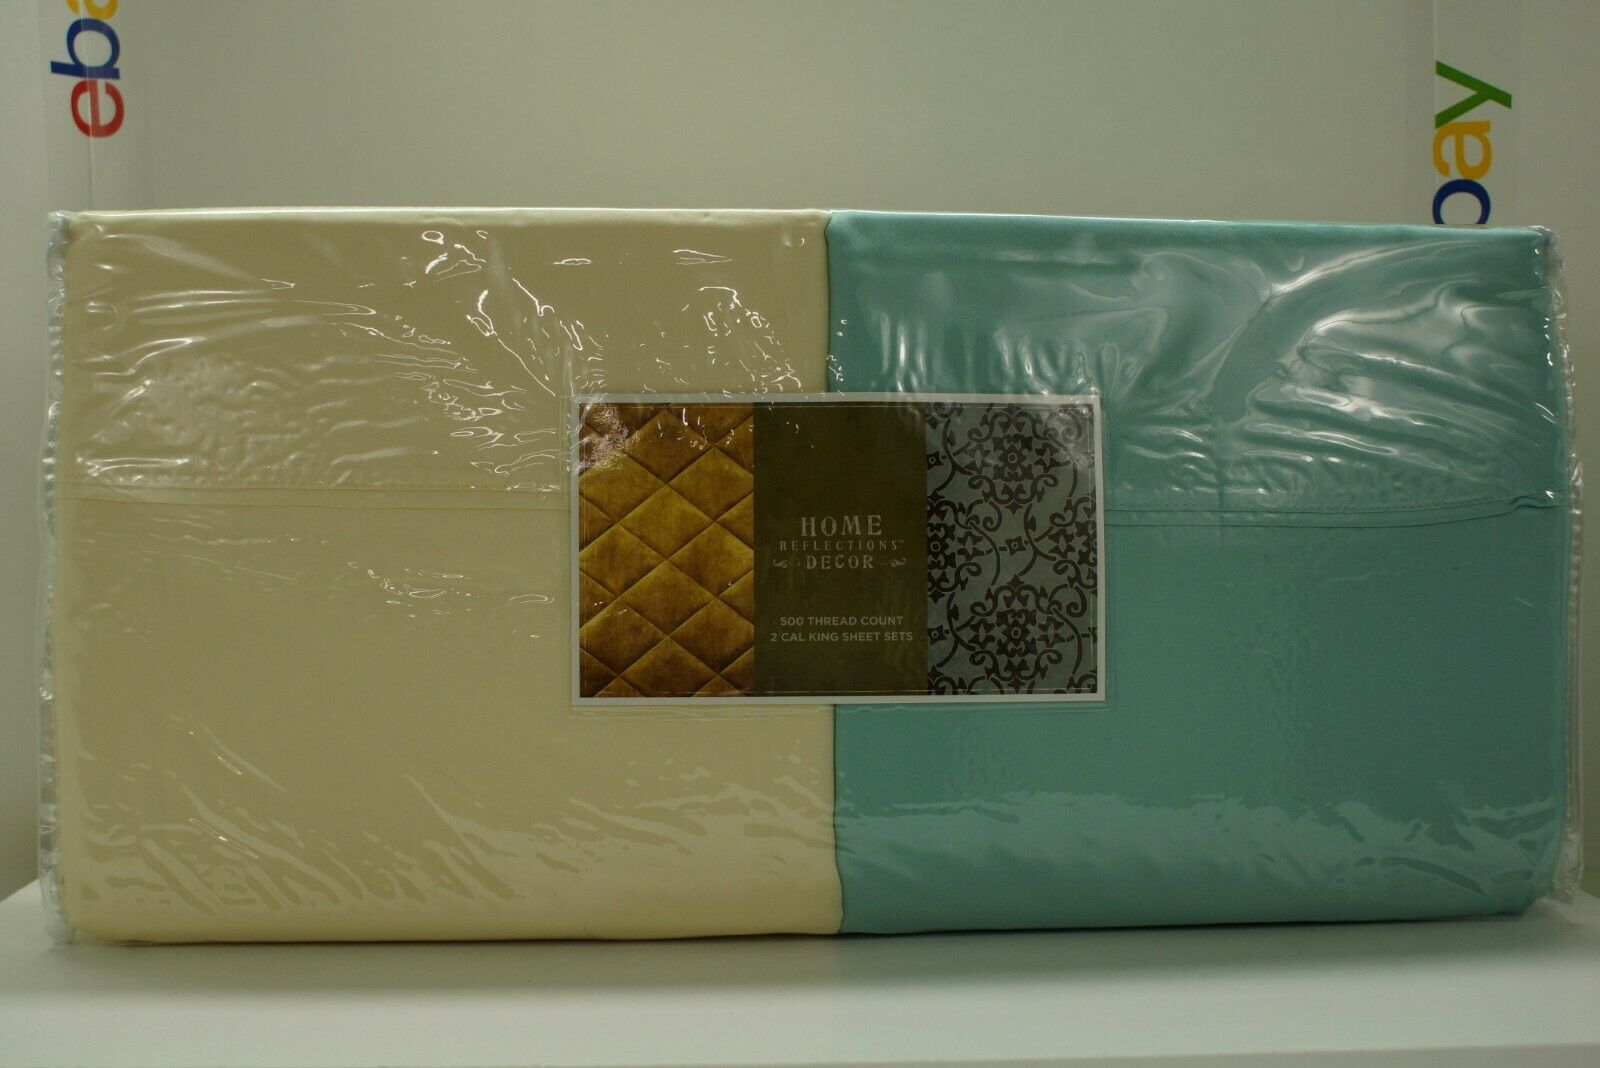 Home Reflections QVC 500 500 500 Thread Count Cal King Sheet Set Seaglass Ivory w Cases 6dd2ff